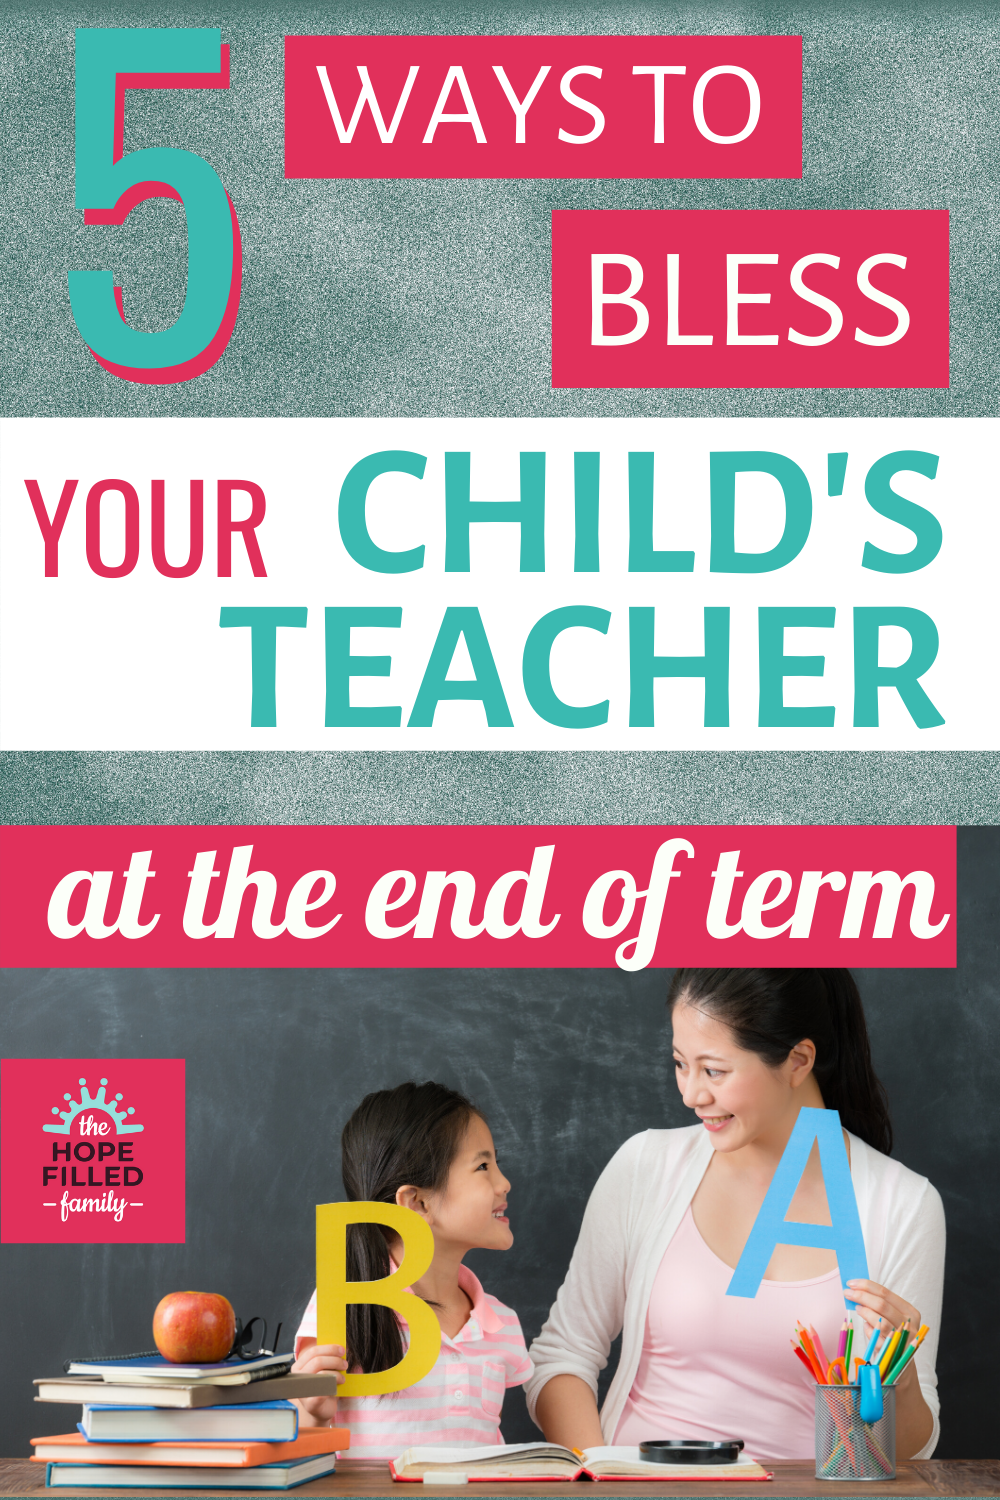 How can I support my child's teacher at the end of term? What should I give my child's teacher?